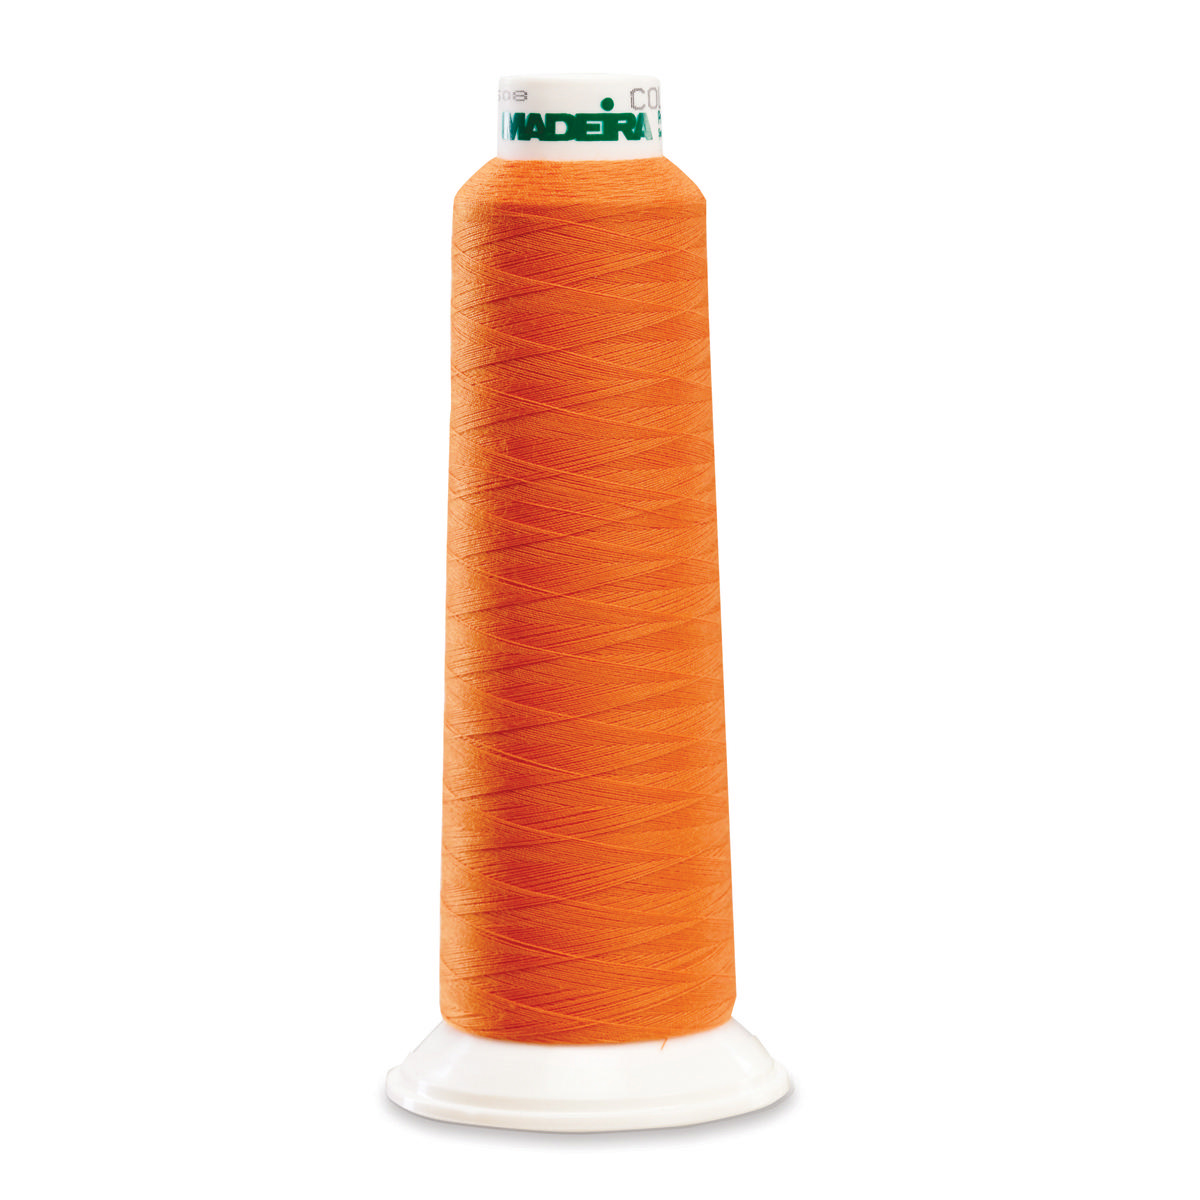 POLY ORANGE 2000YD SERGER THREAD MADEIRA AEROLOCK